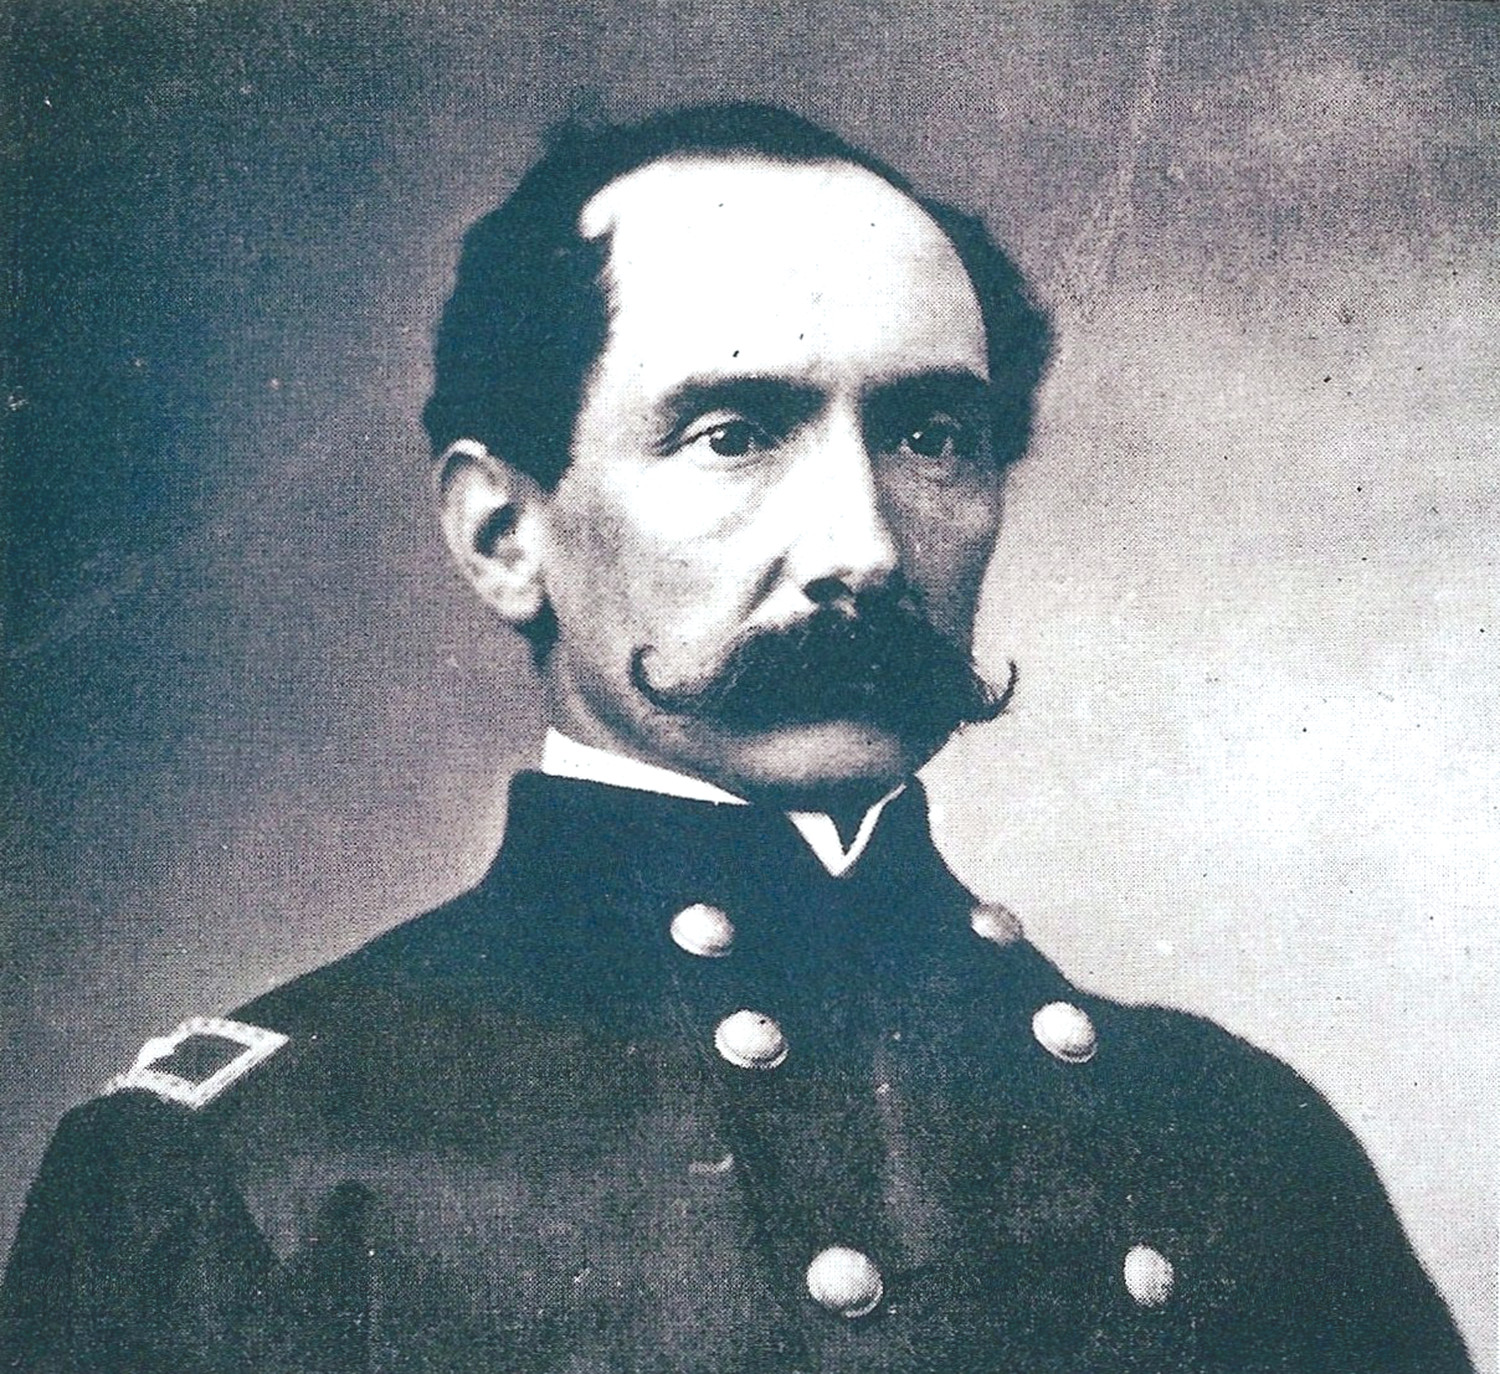 Gen. Edward E. Potter led Union forces during the Battle of Dingle's Mill, after which the first unknown soldier buried in Sumter died.